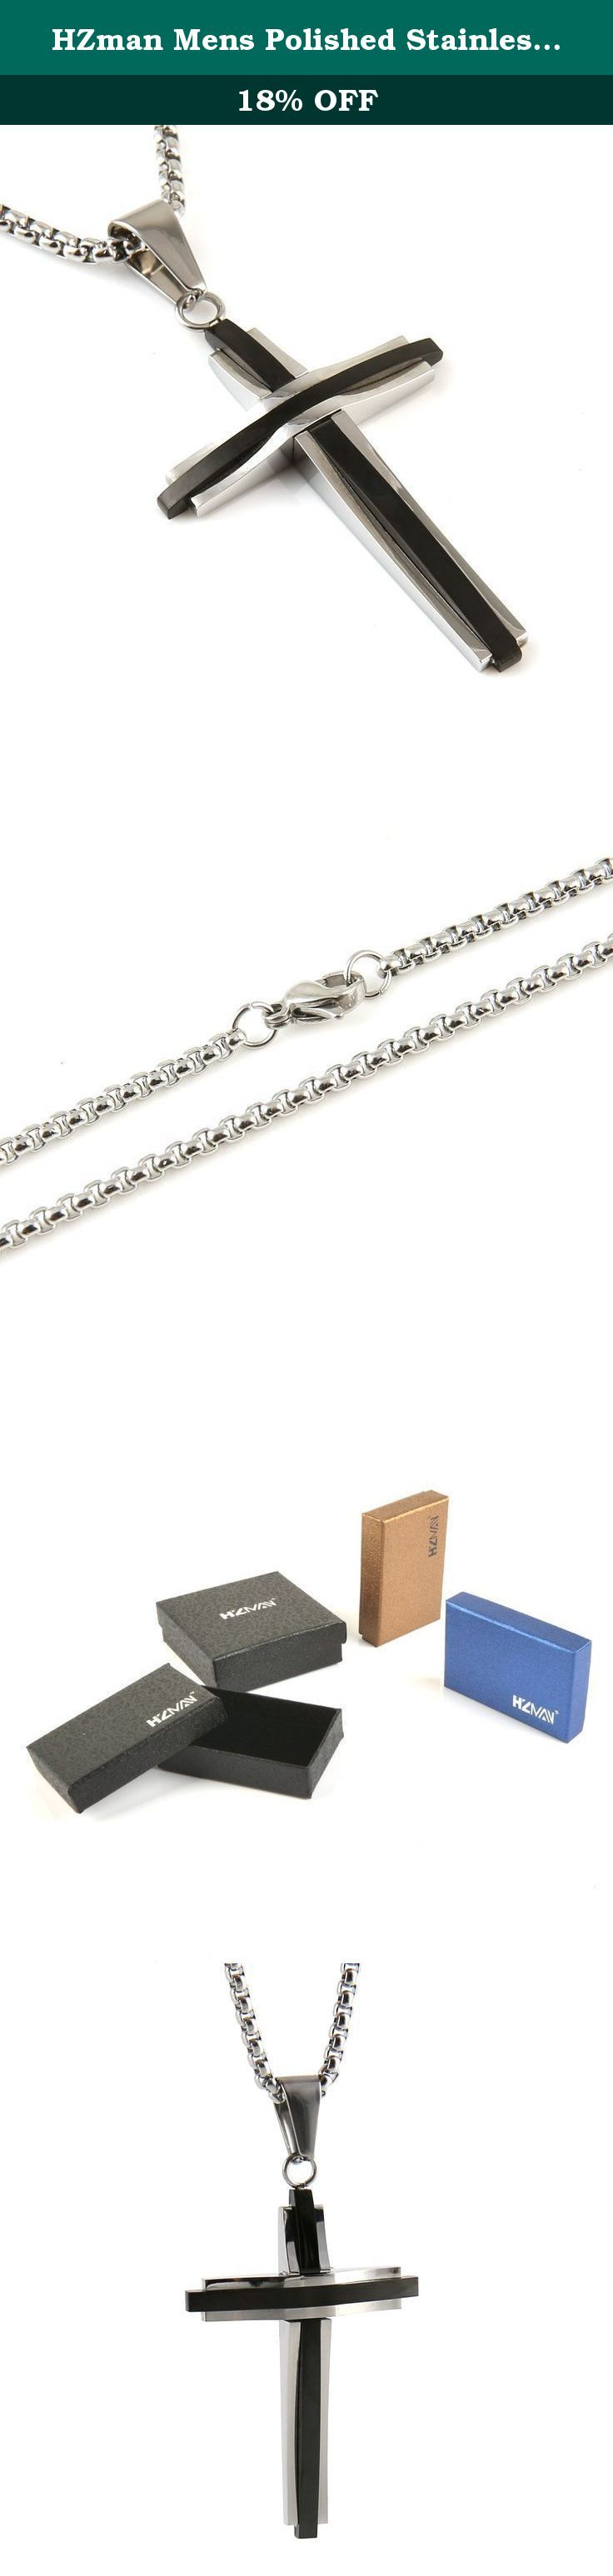 """HZman Mens Polished Stainless Steel Silver Black Tone Cross Pendant Necklace 24"""" Rolo Cable Wheat Chain. 30 DAY MONEY BACK GUARANTEE-100% satisfaction guaranteed. That is our promise. So, if you're not completely happy with your purchase within the first 30 days, just let us know. We will do whatever it takes to make it right Provide The Best Quality jewelry and Customer Service on Amazon. Why choose Stainless Steel Jewelry? Stainless Steel jewelry does not tarnish and oxidize, which can..."""